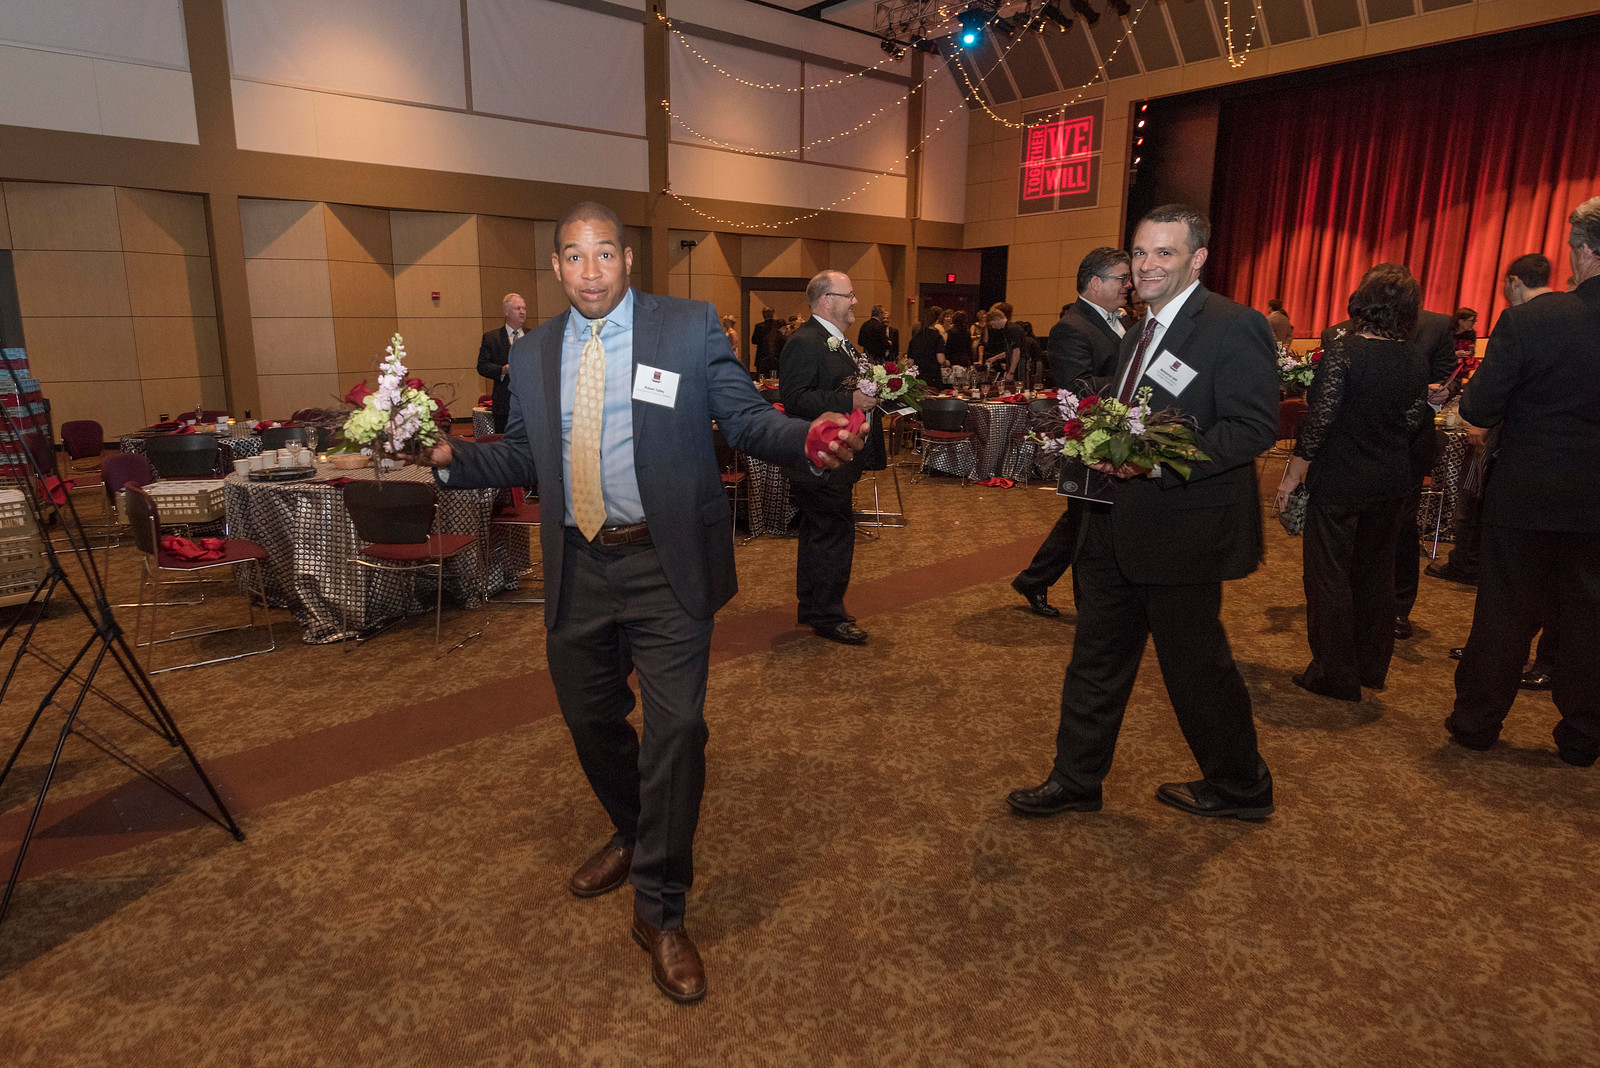 Robert Talley (center), guests and honorees enjoy the Distinguished Alumni Dinner on Friday, March 24, 2017 in Chico, Calif. (Jason Halley/University Photographer)